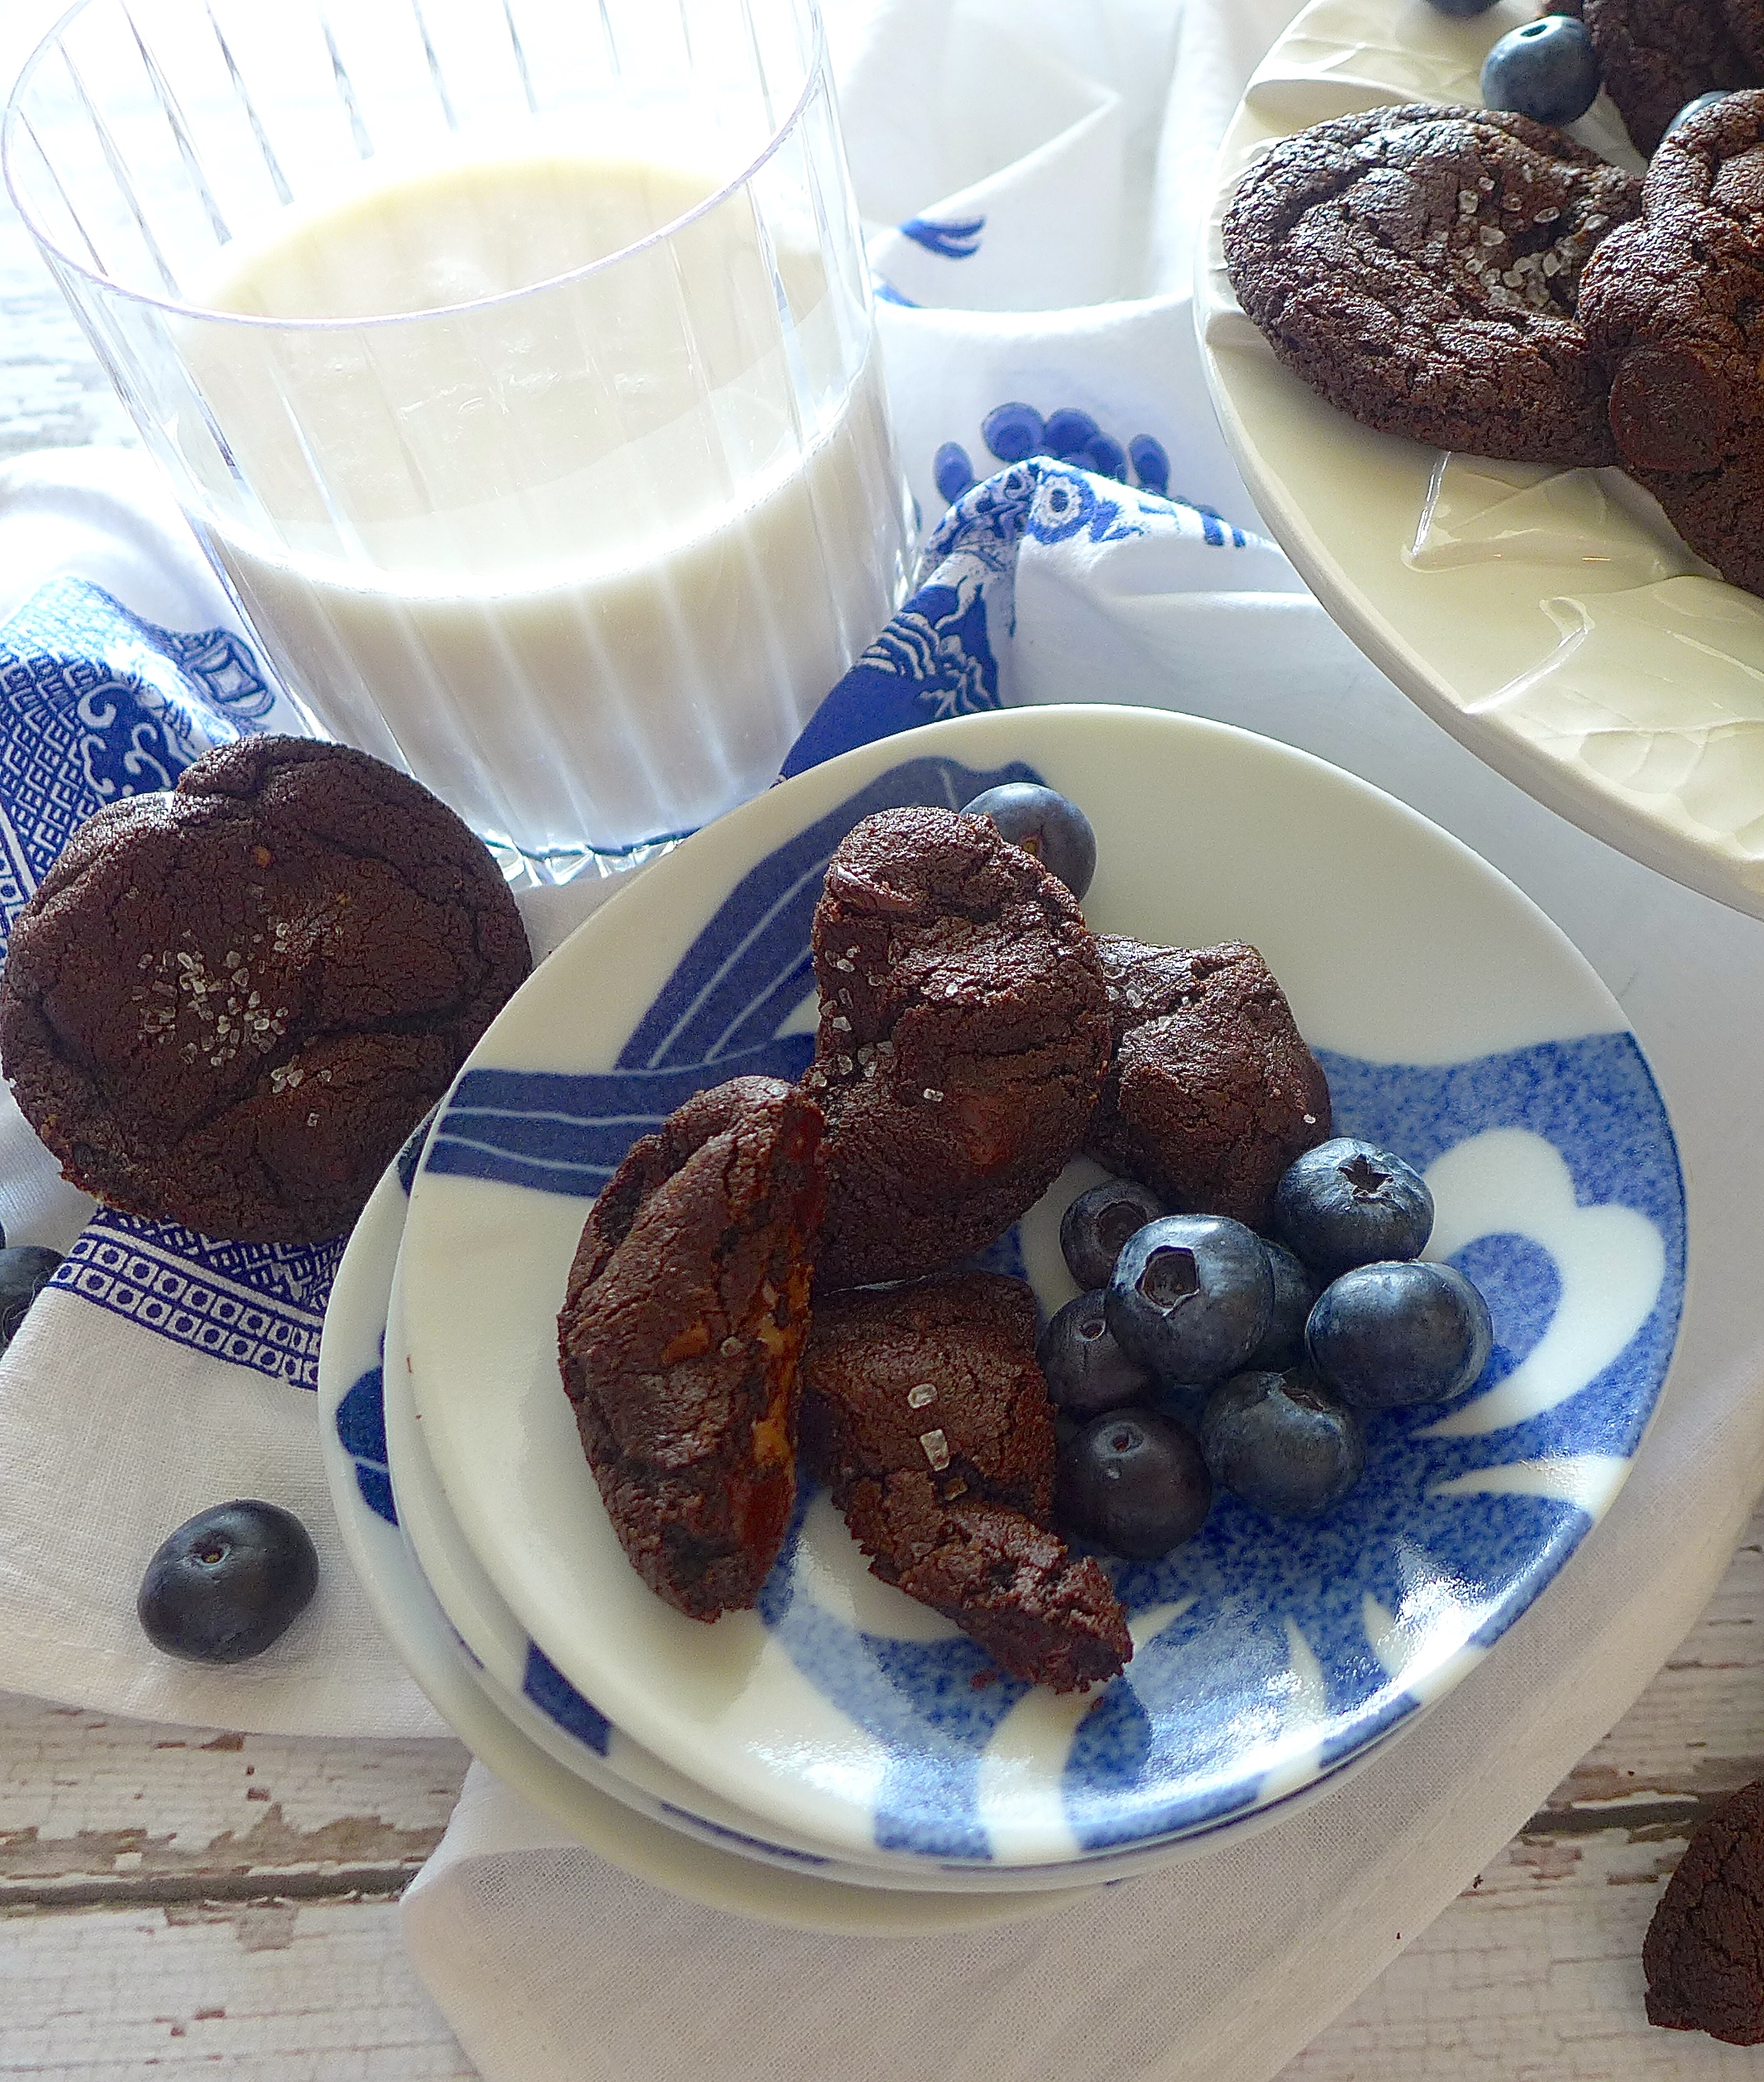 Double Chocolate Caramel Cookies make a great snack with fruit and a glass of your favorite milk or milk alternative. ( Almond milk pictured.)